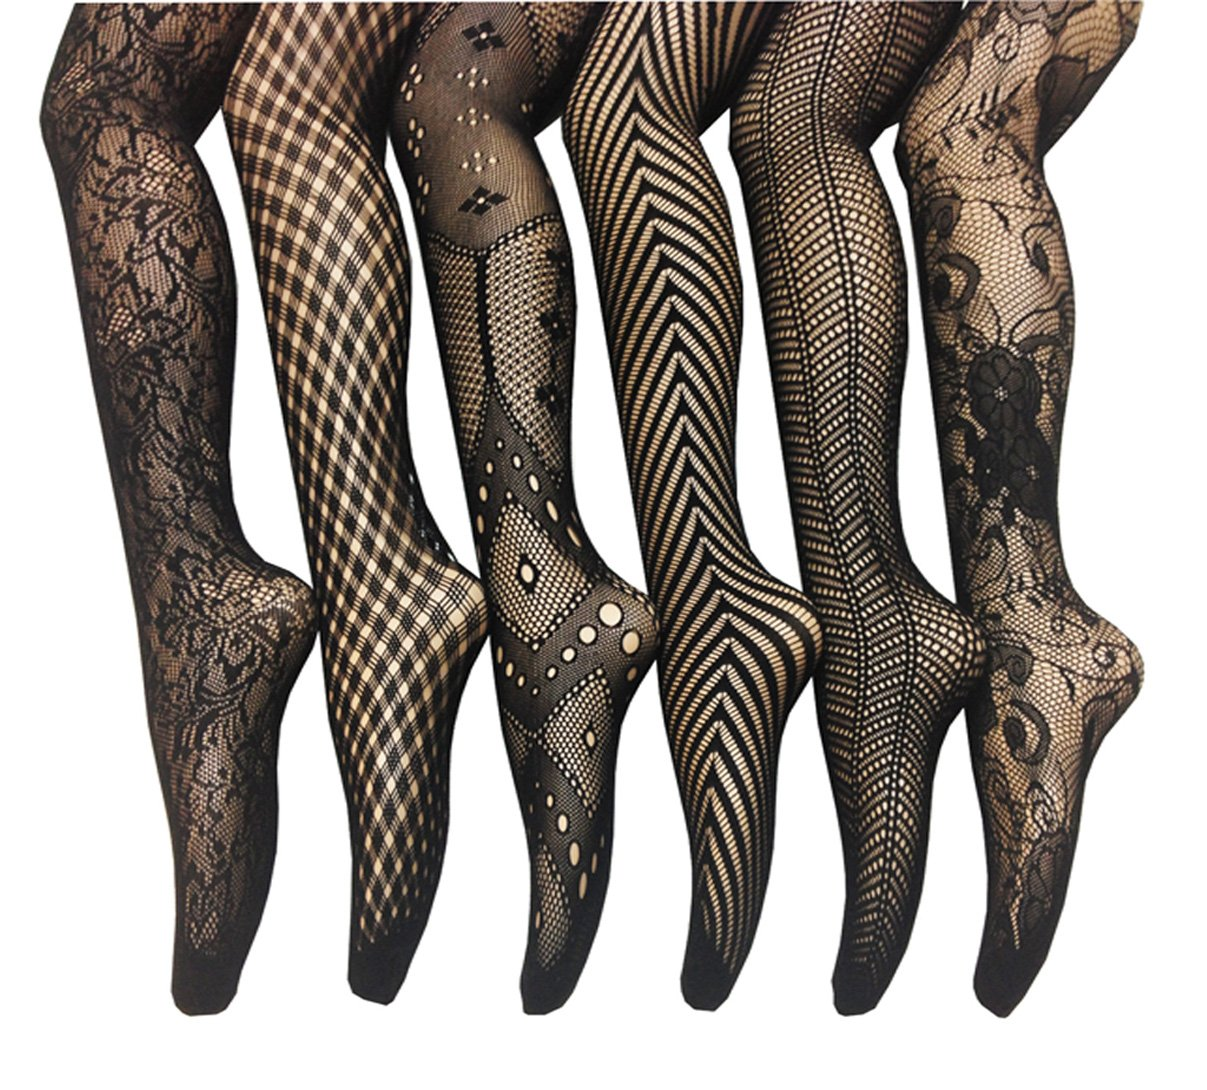 Frenchic Seamless Fishnet Lace Stocking Tights - Extended Sizes (Pack of 6) (M-L), Black